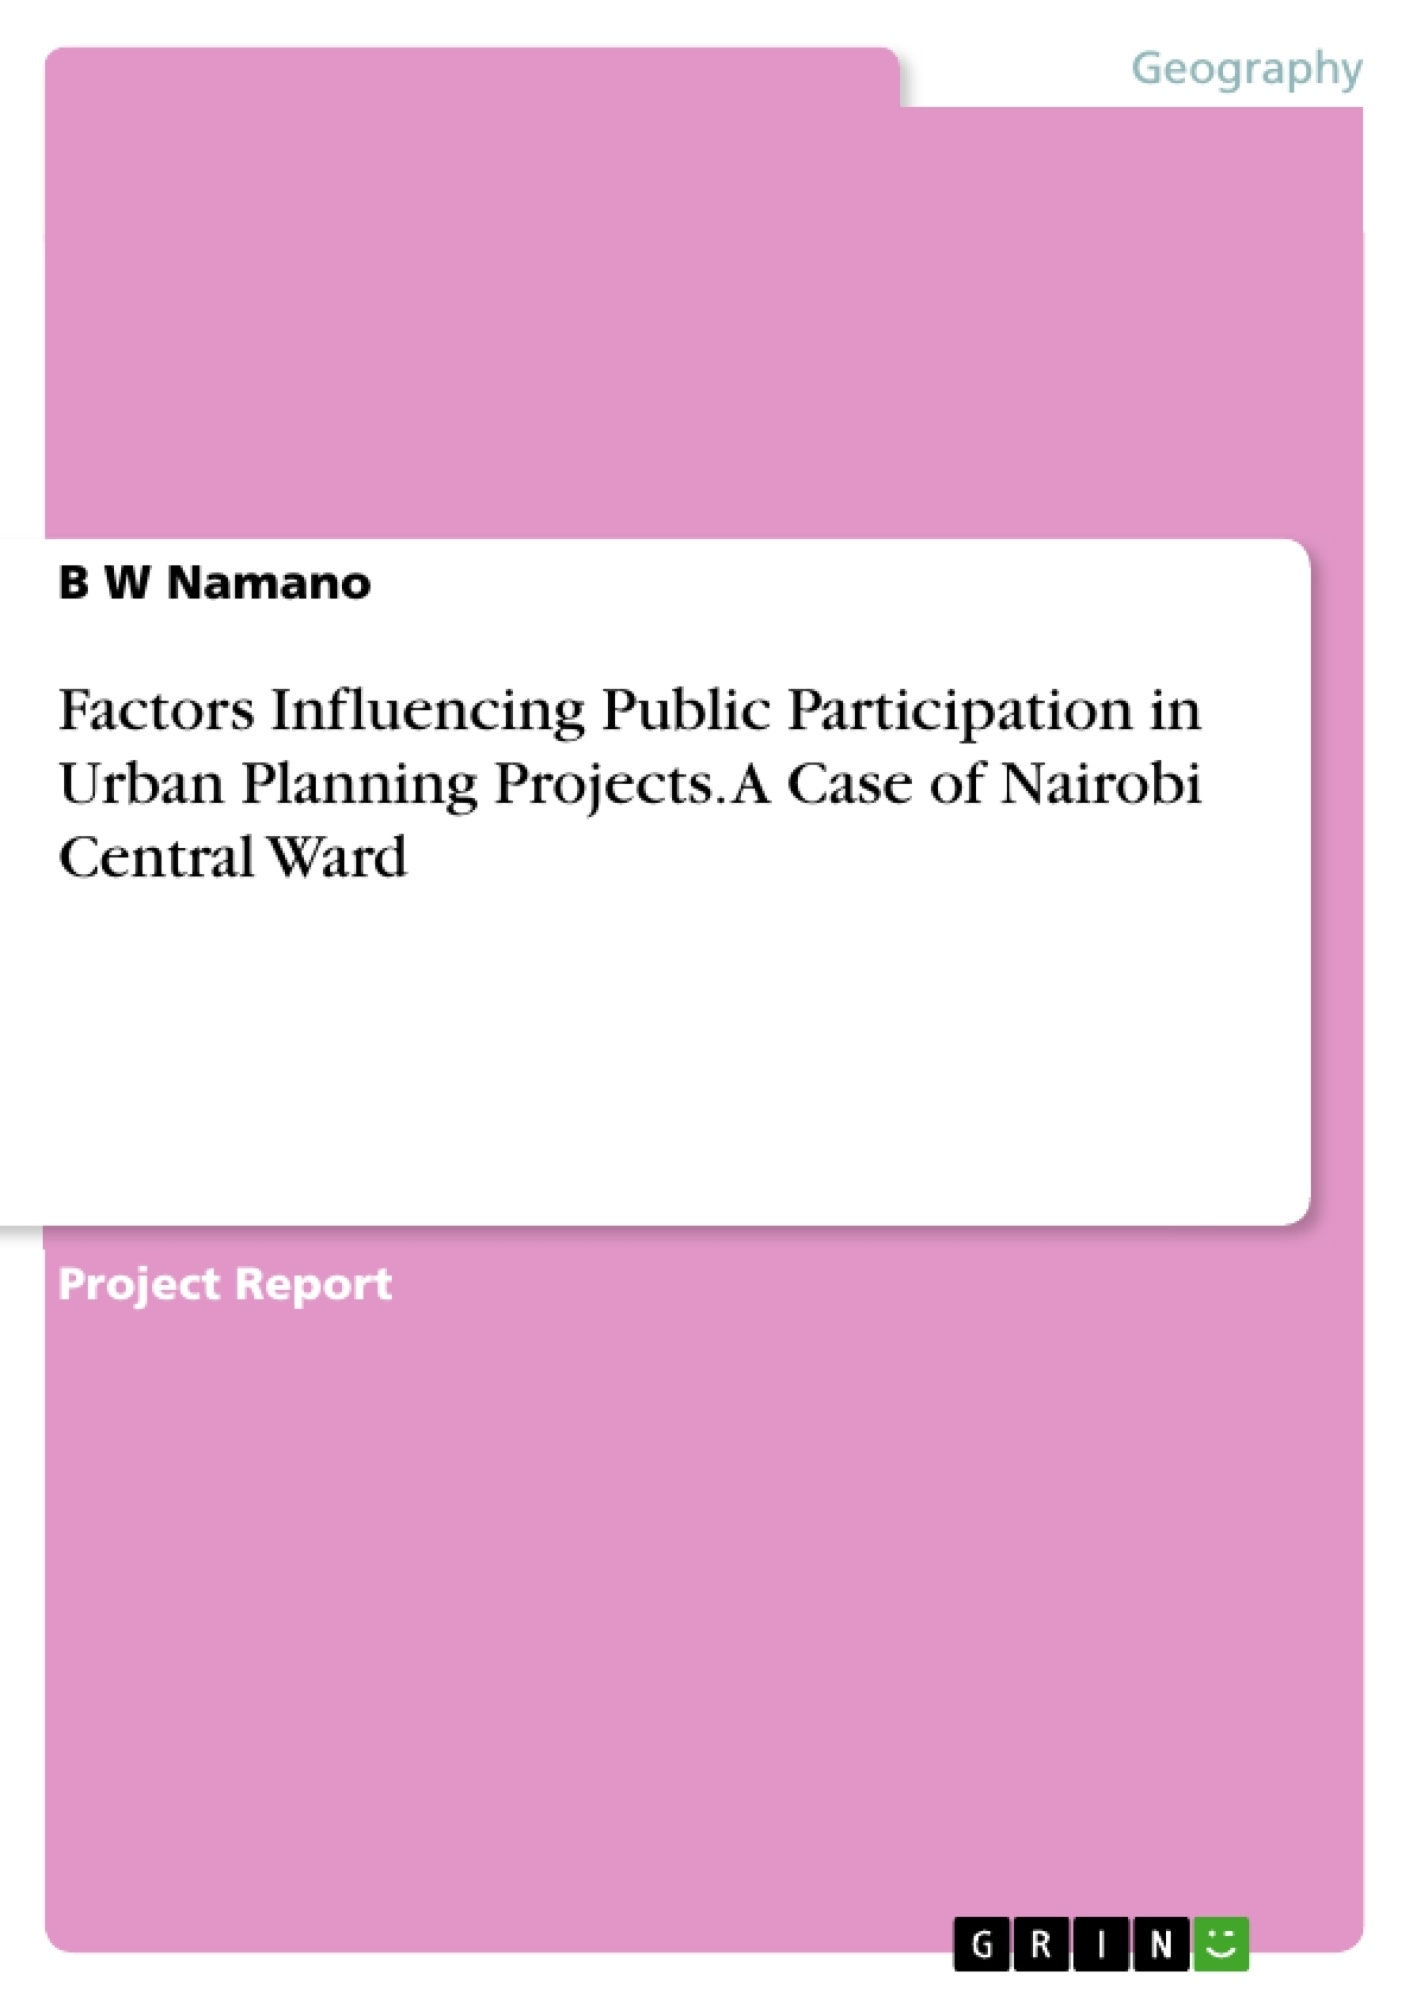 Title: Factors Influencing Public Participation in Urban Planning Projects. A Case of Nairobi Central Ward